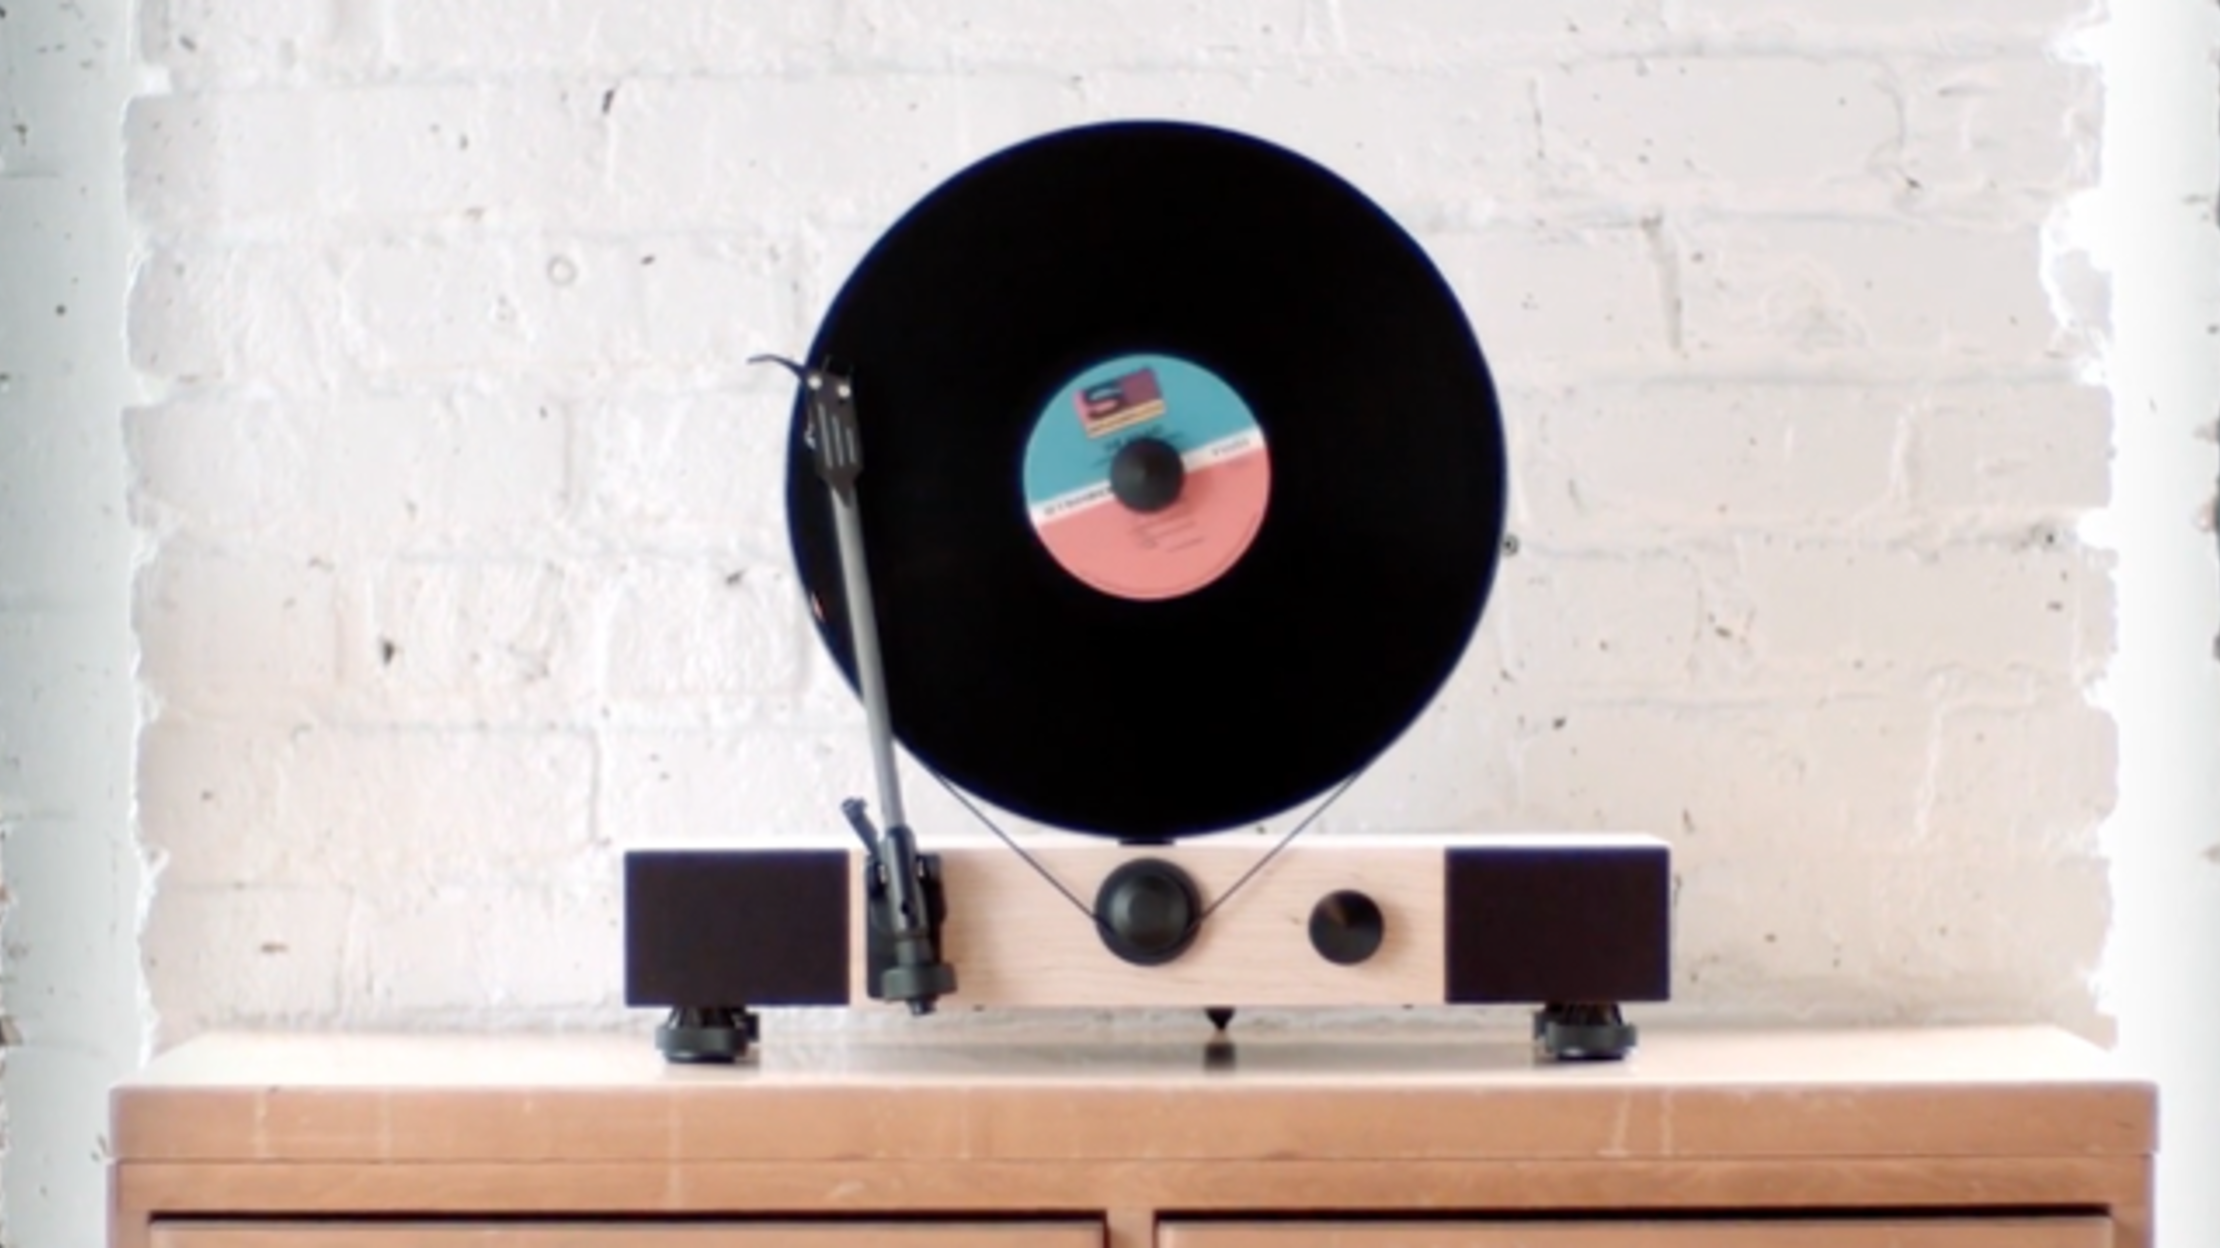 Vertical Turntable Puts a Fresh Spin on the Classic Record Player